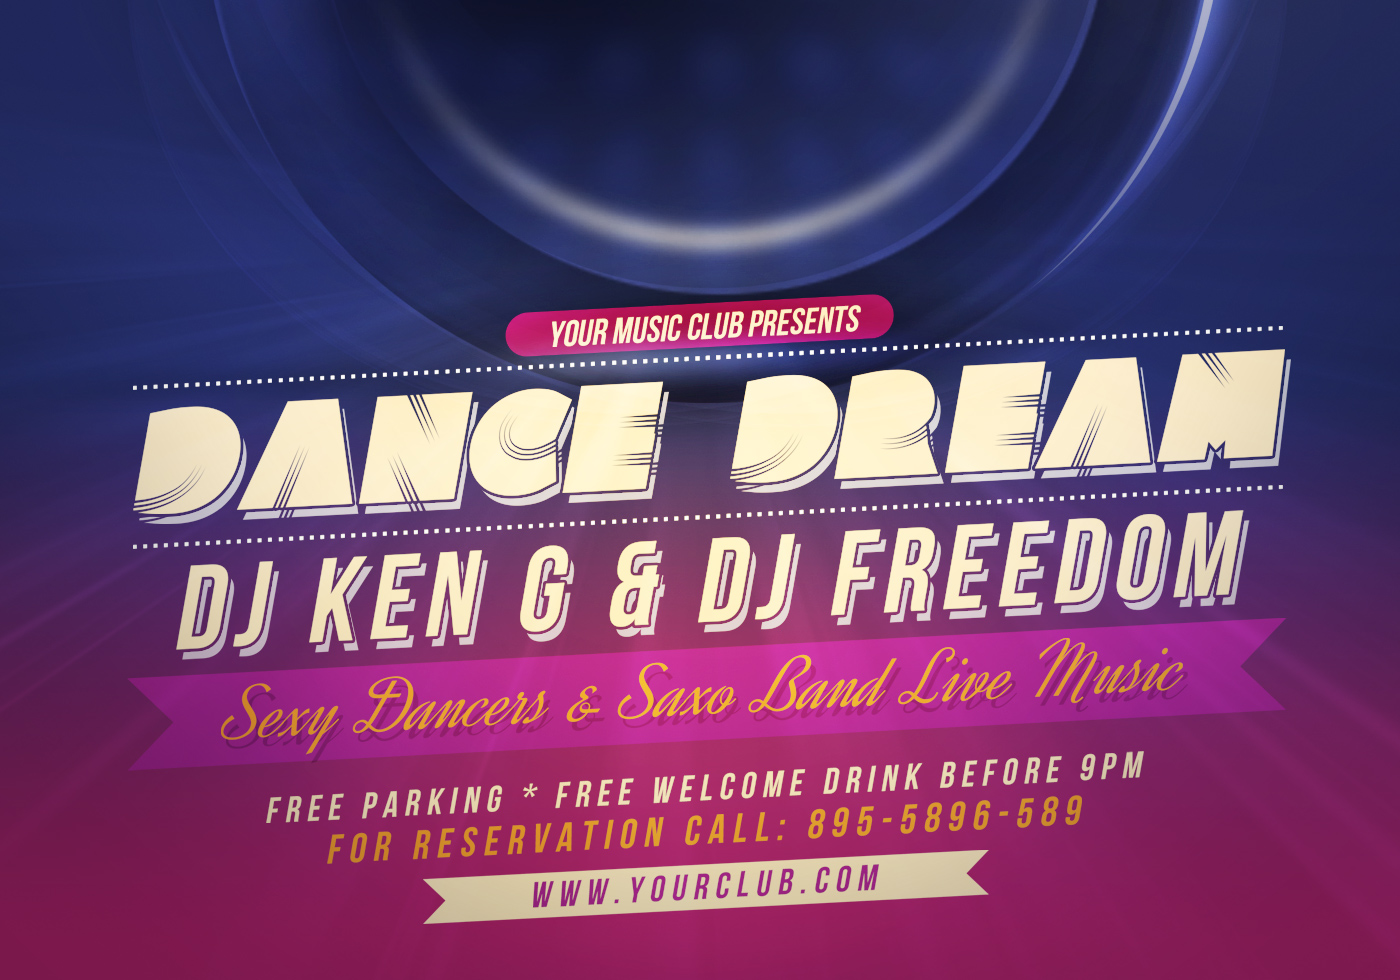 Dance Party Flyer Psd Template Free Photoshop Brushes At Brusheezy